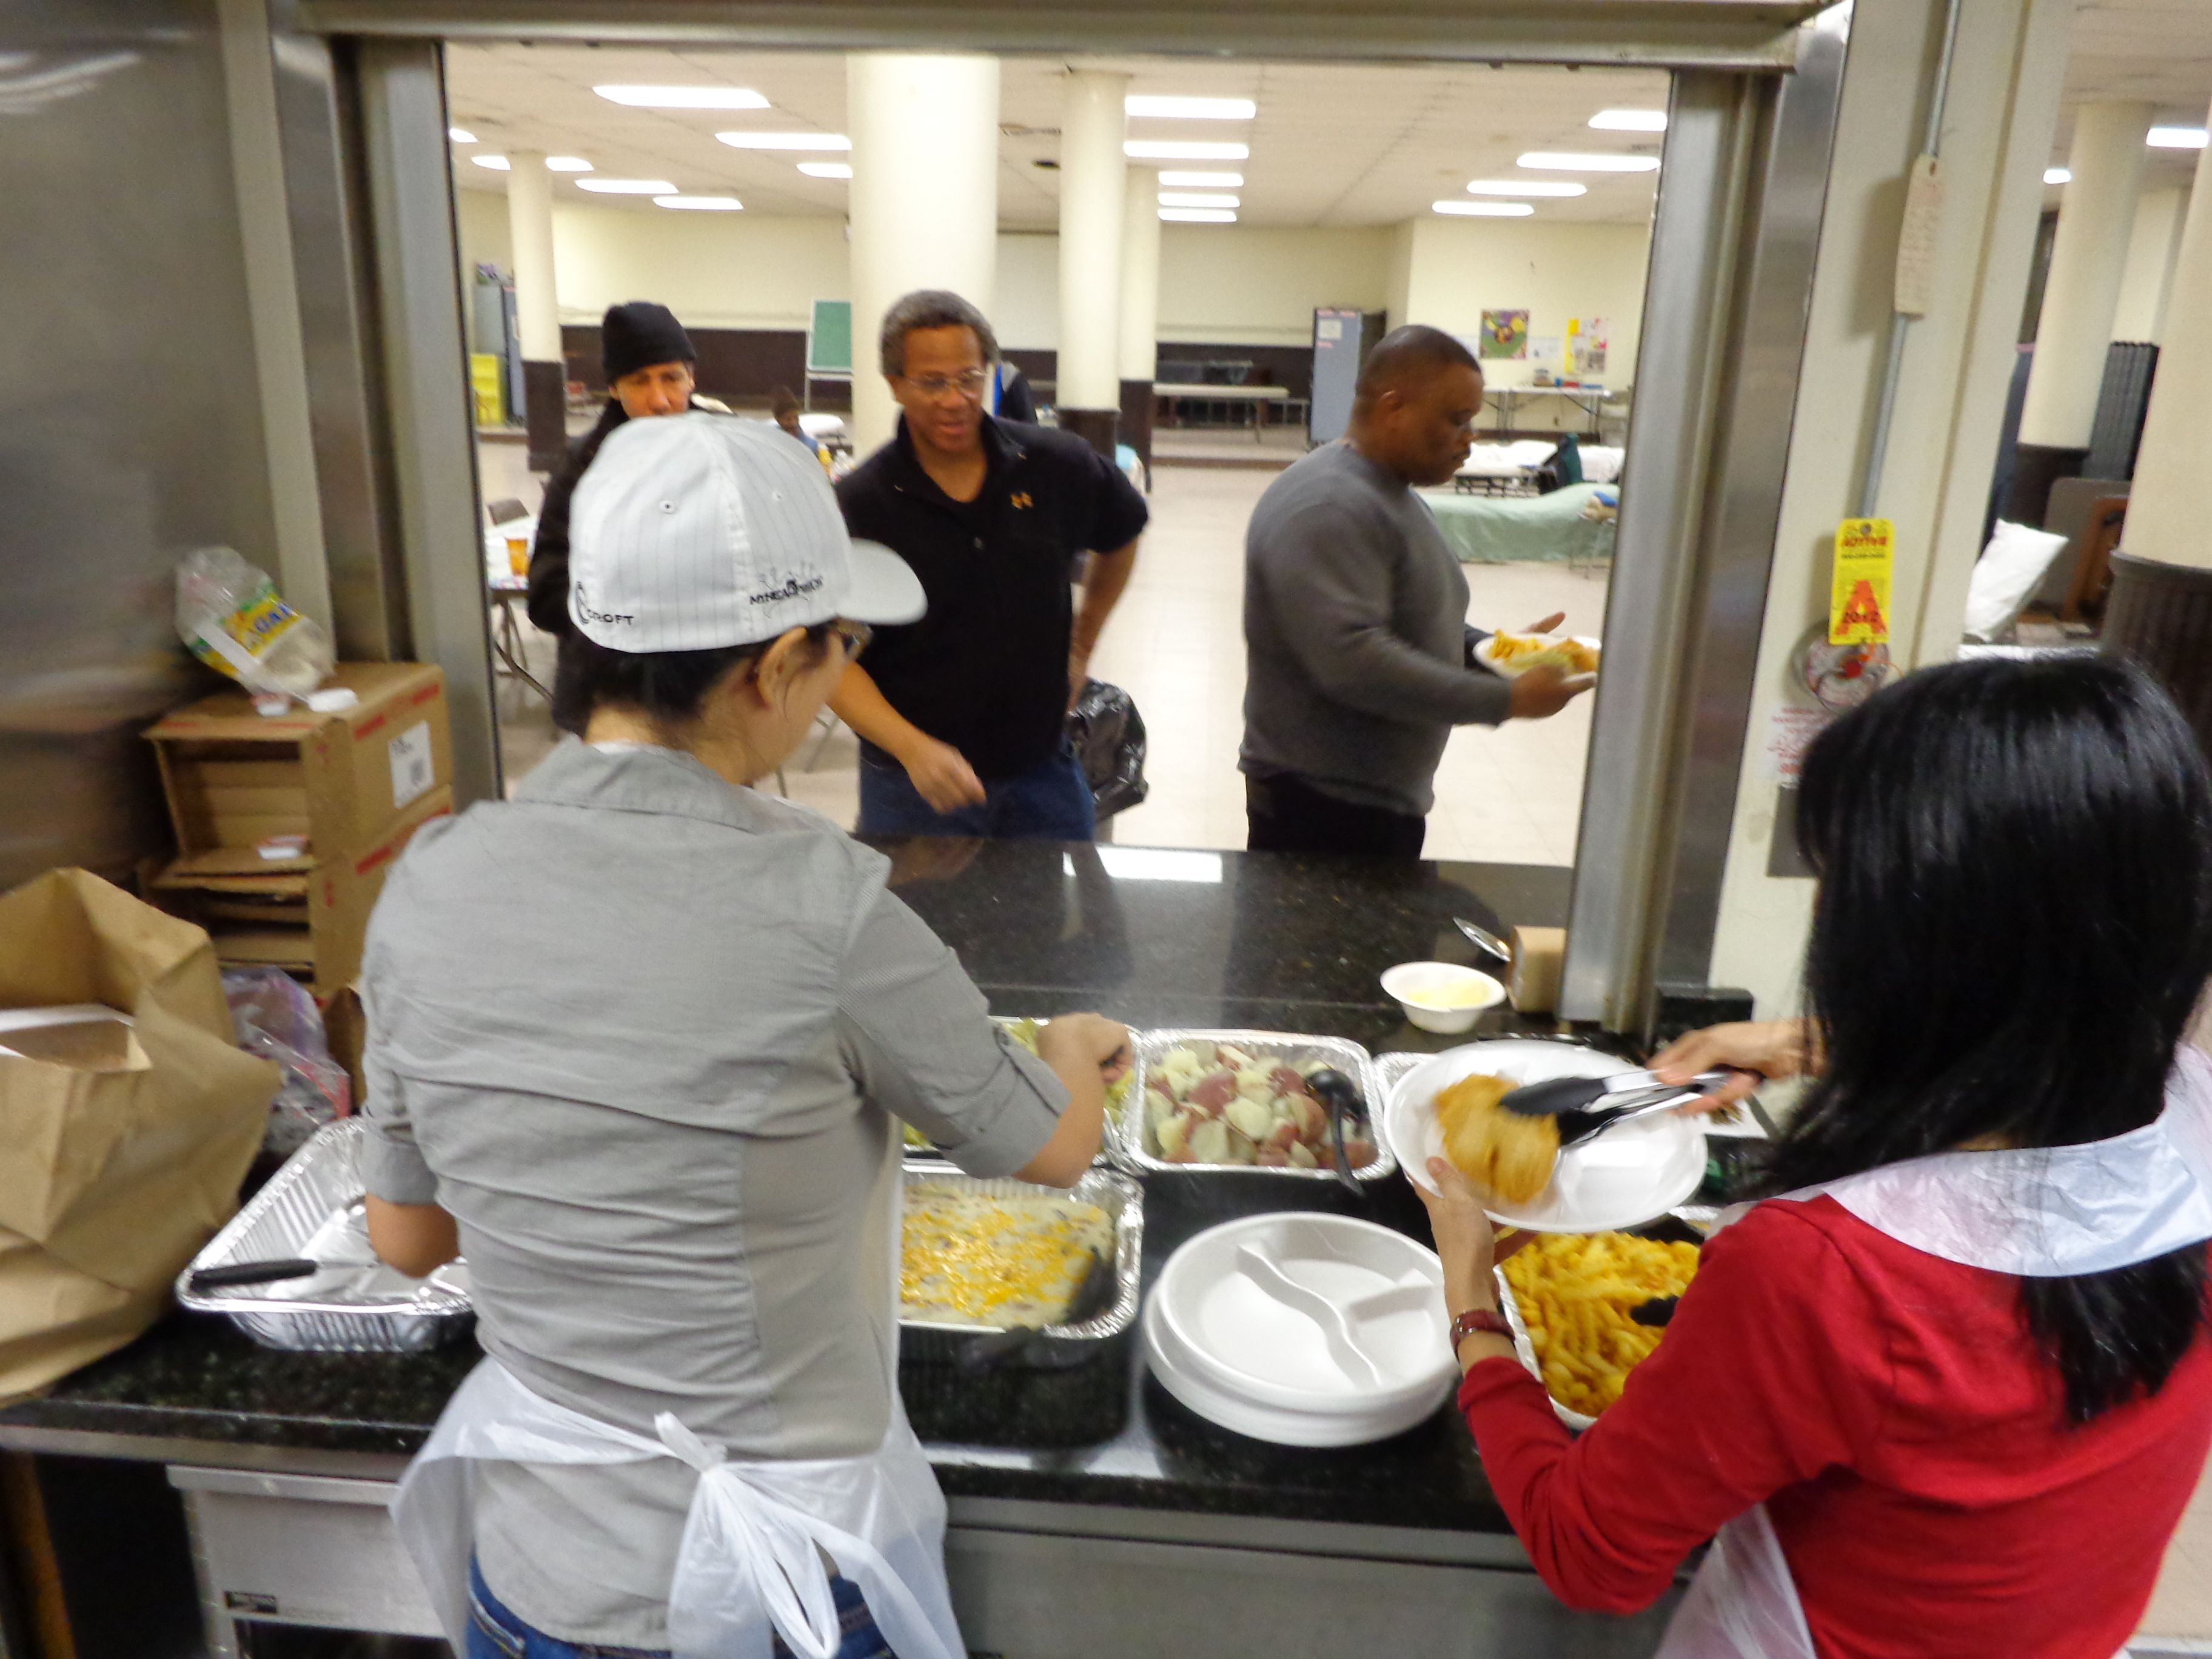 How to Volunteer at a Homeless Shelter recommendations